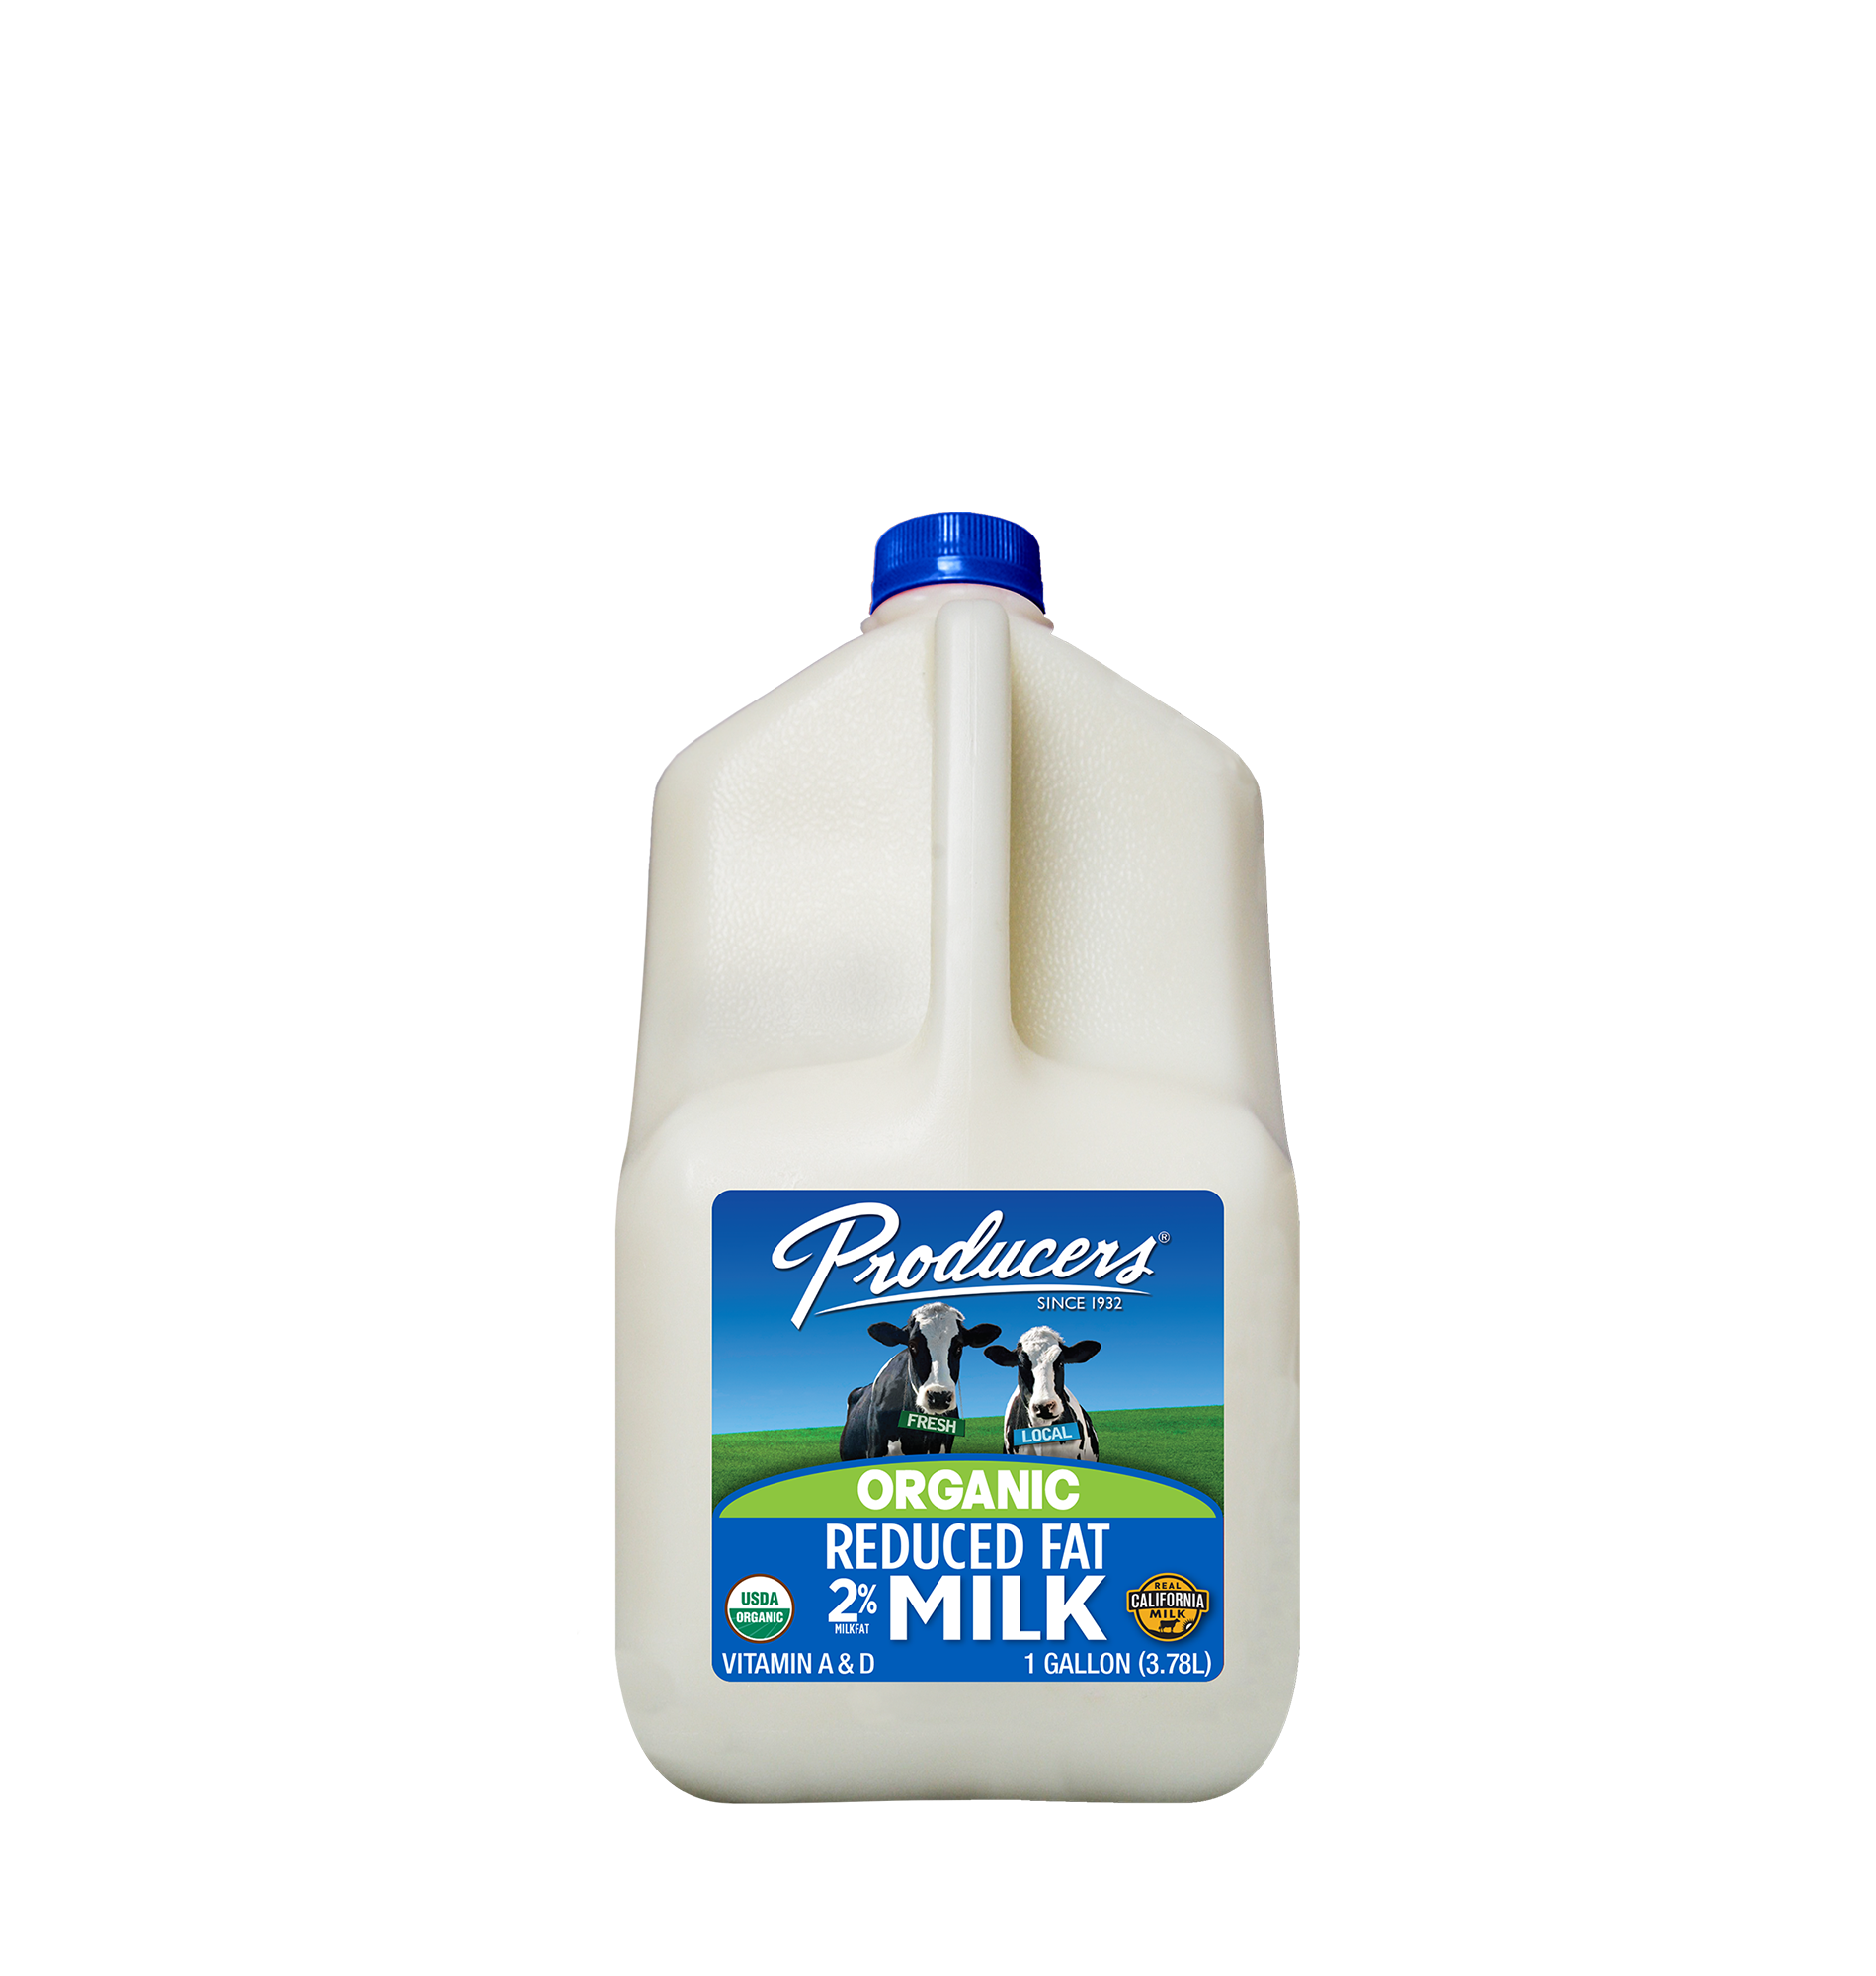 Producers Dairy Reduced Fat Organic Milk